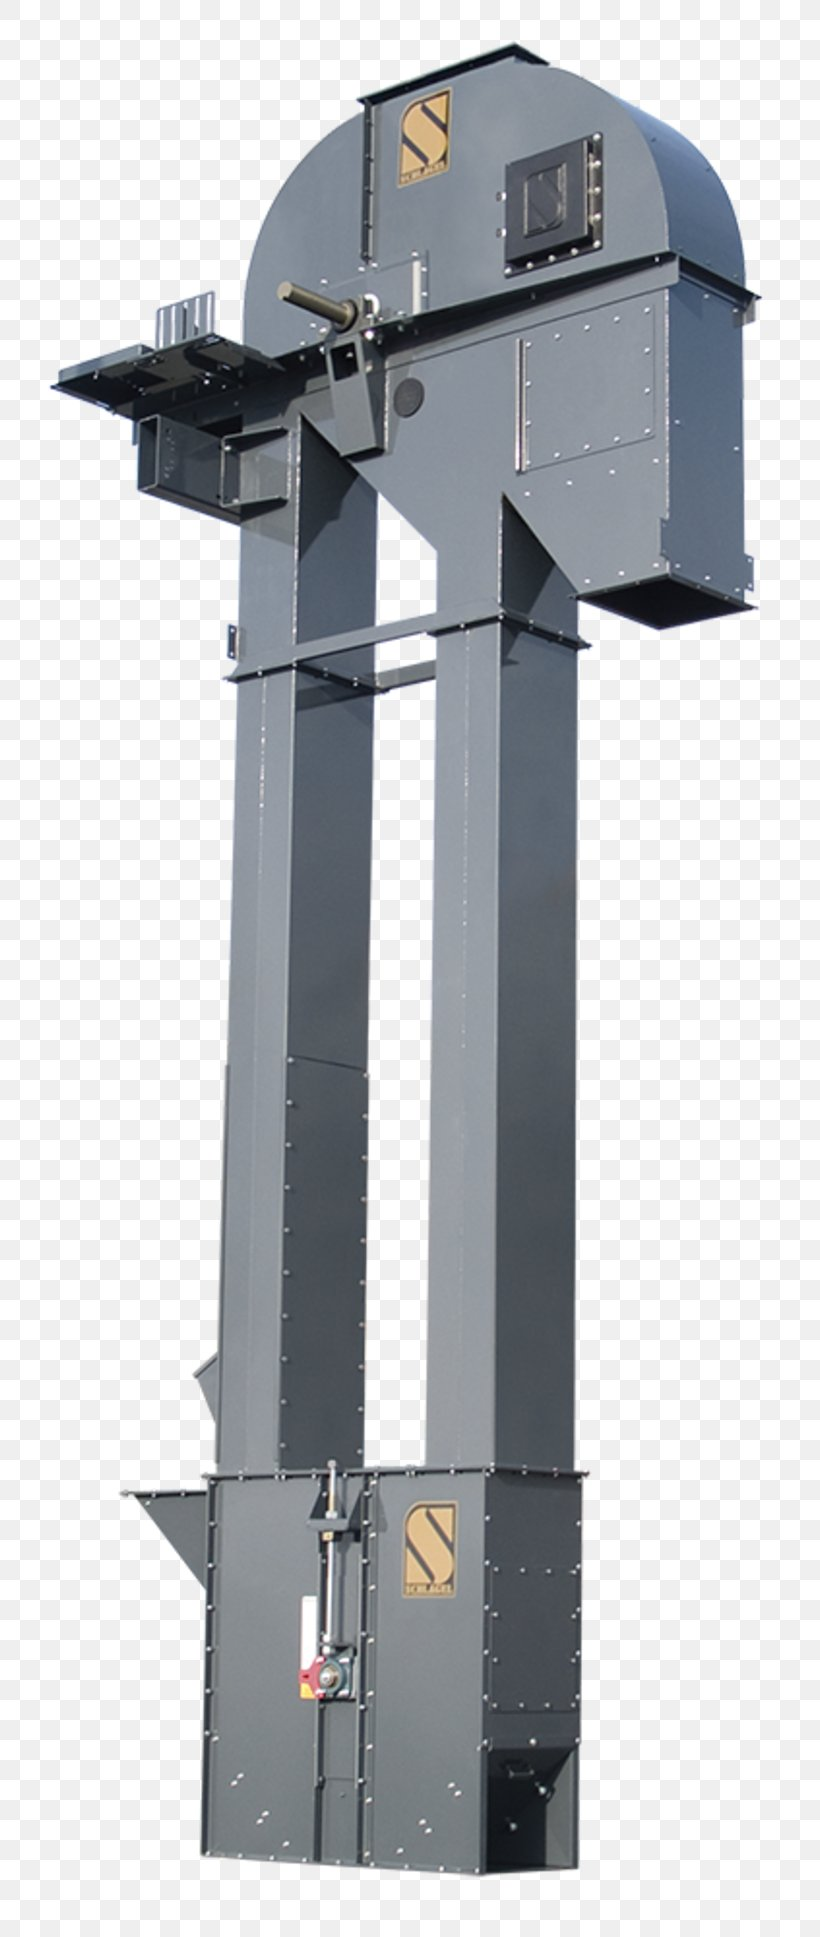 Bucket Elevator Manufacturing Conveyor System, PNG, 800x1937px, Bucket Elevator, Bucket, Conveyor Belt, Conveyor System, Electric Motor Download Free